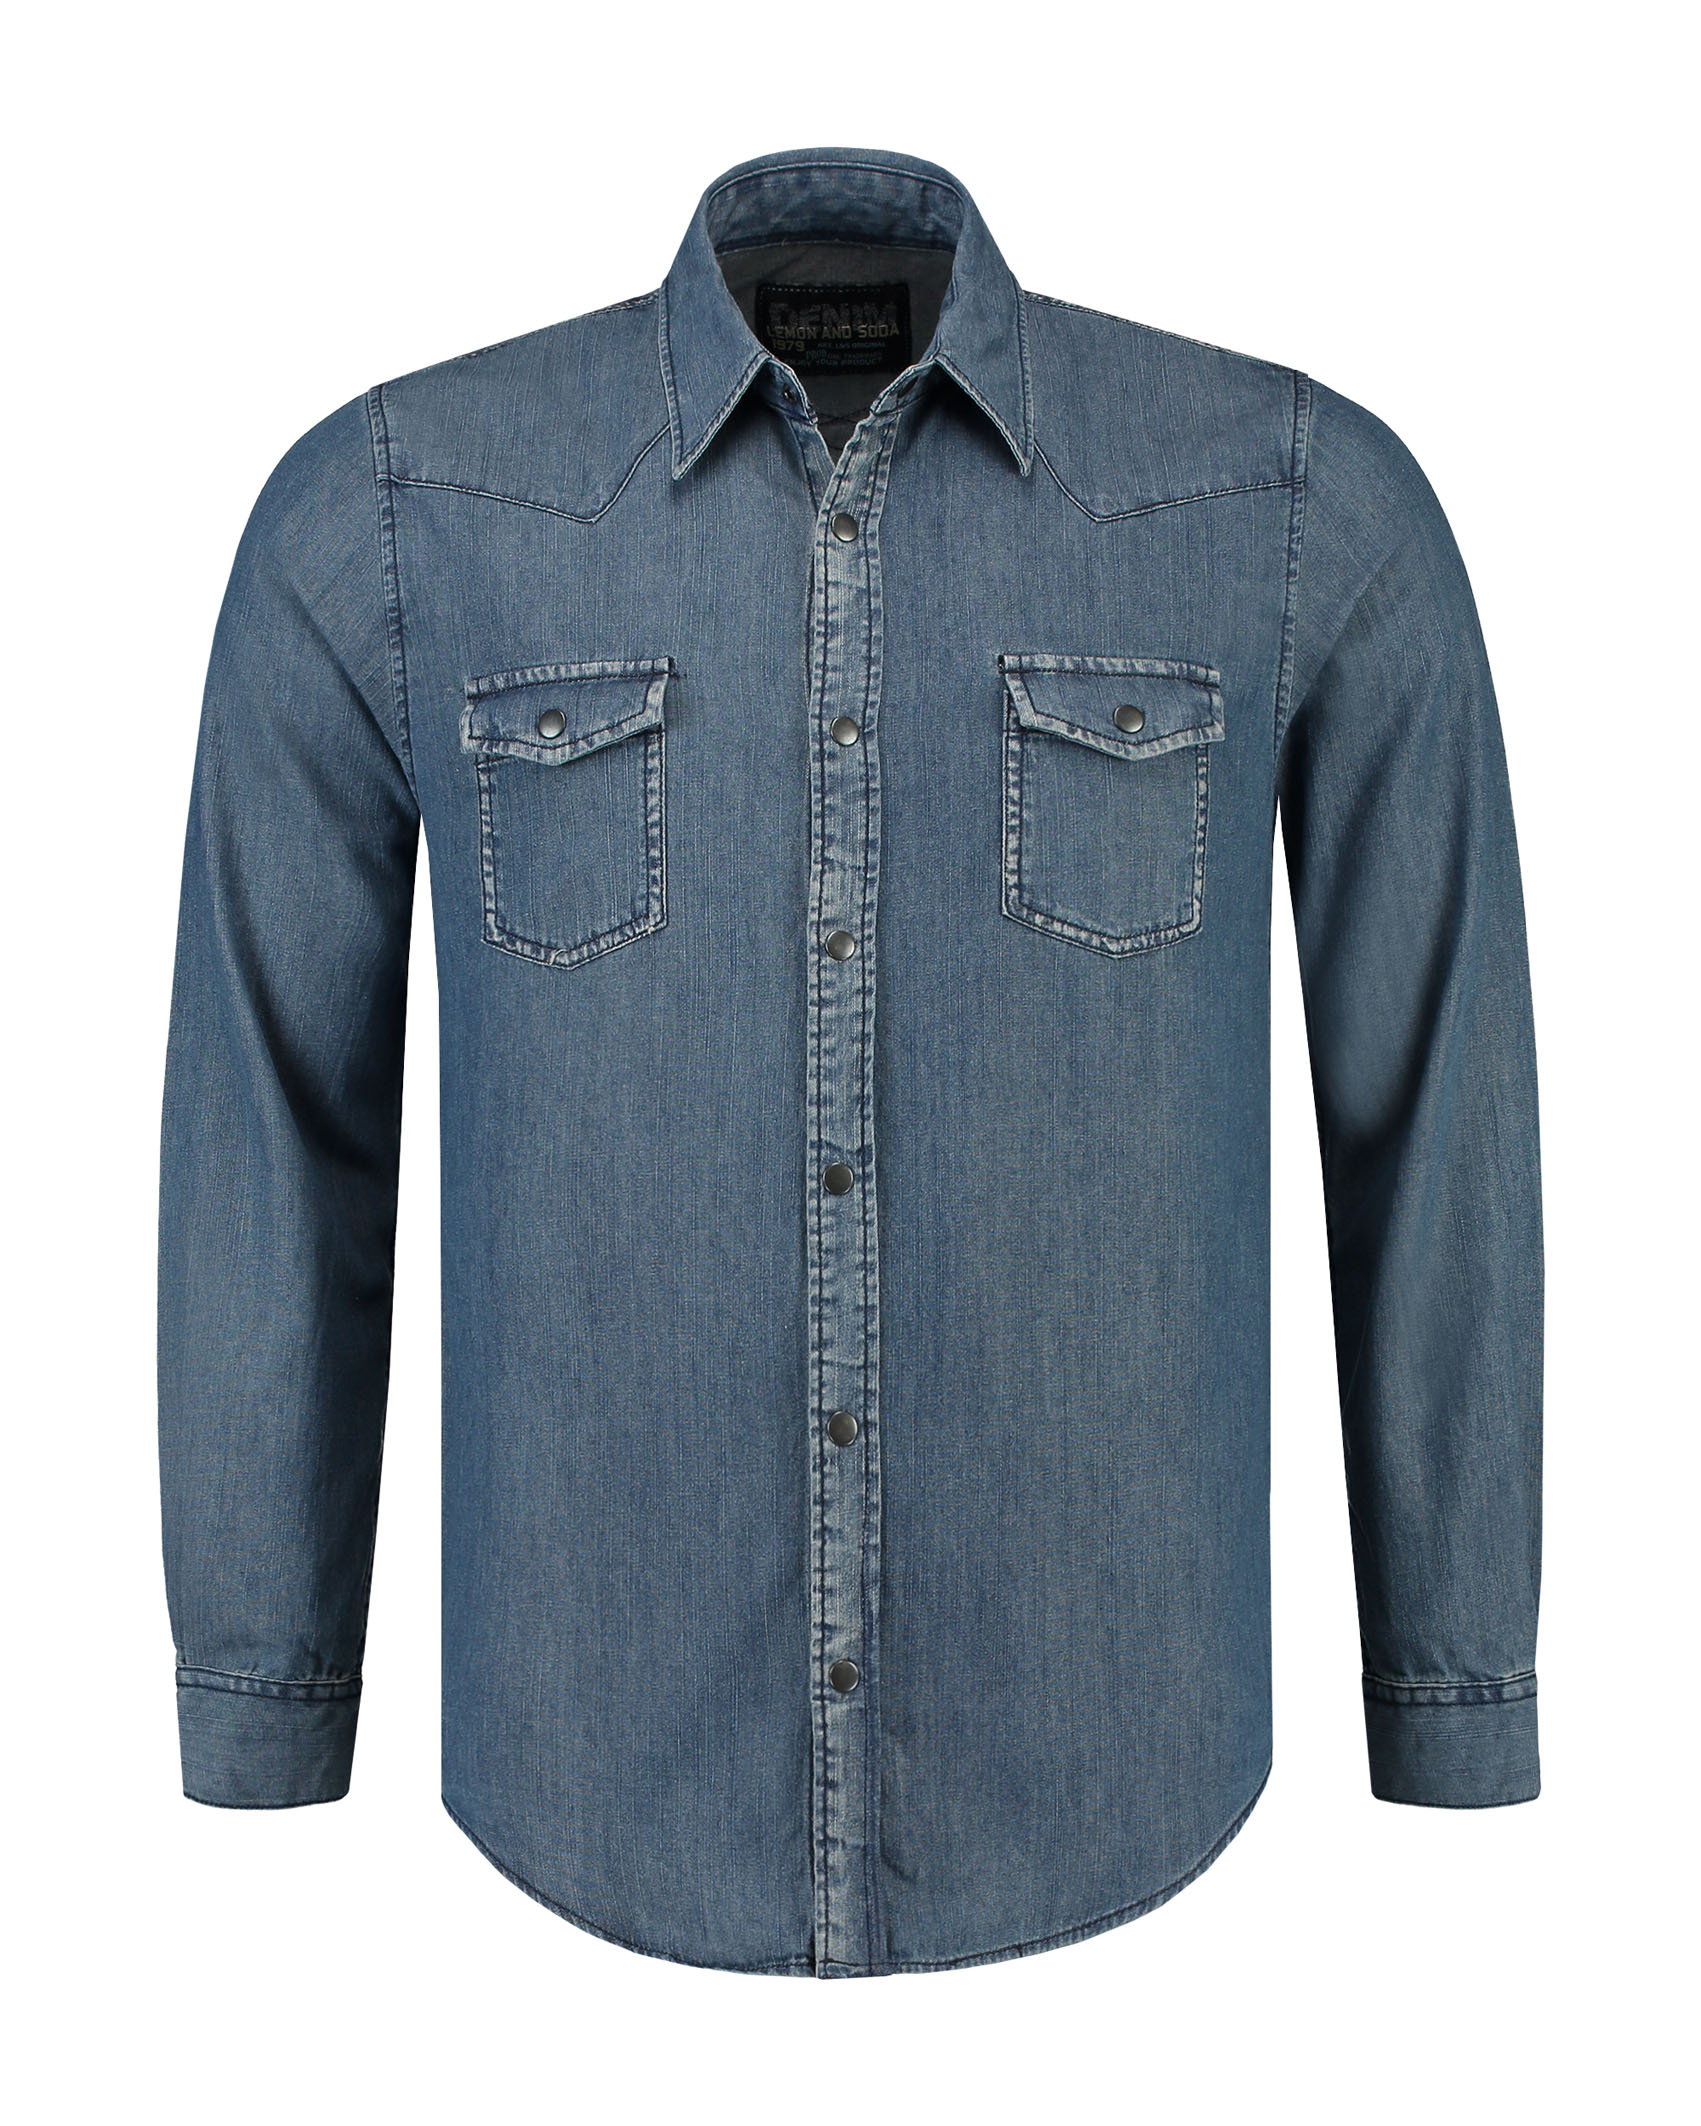 L&S Denim Shirt LS for him